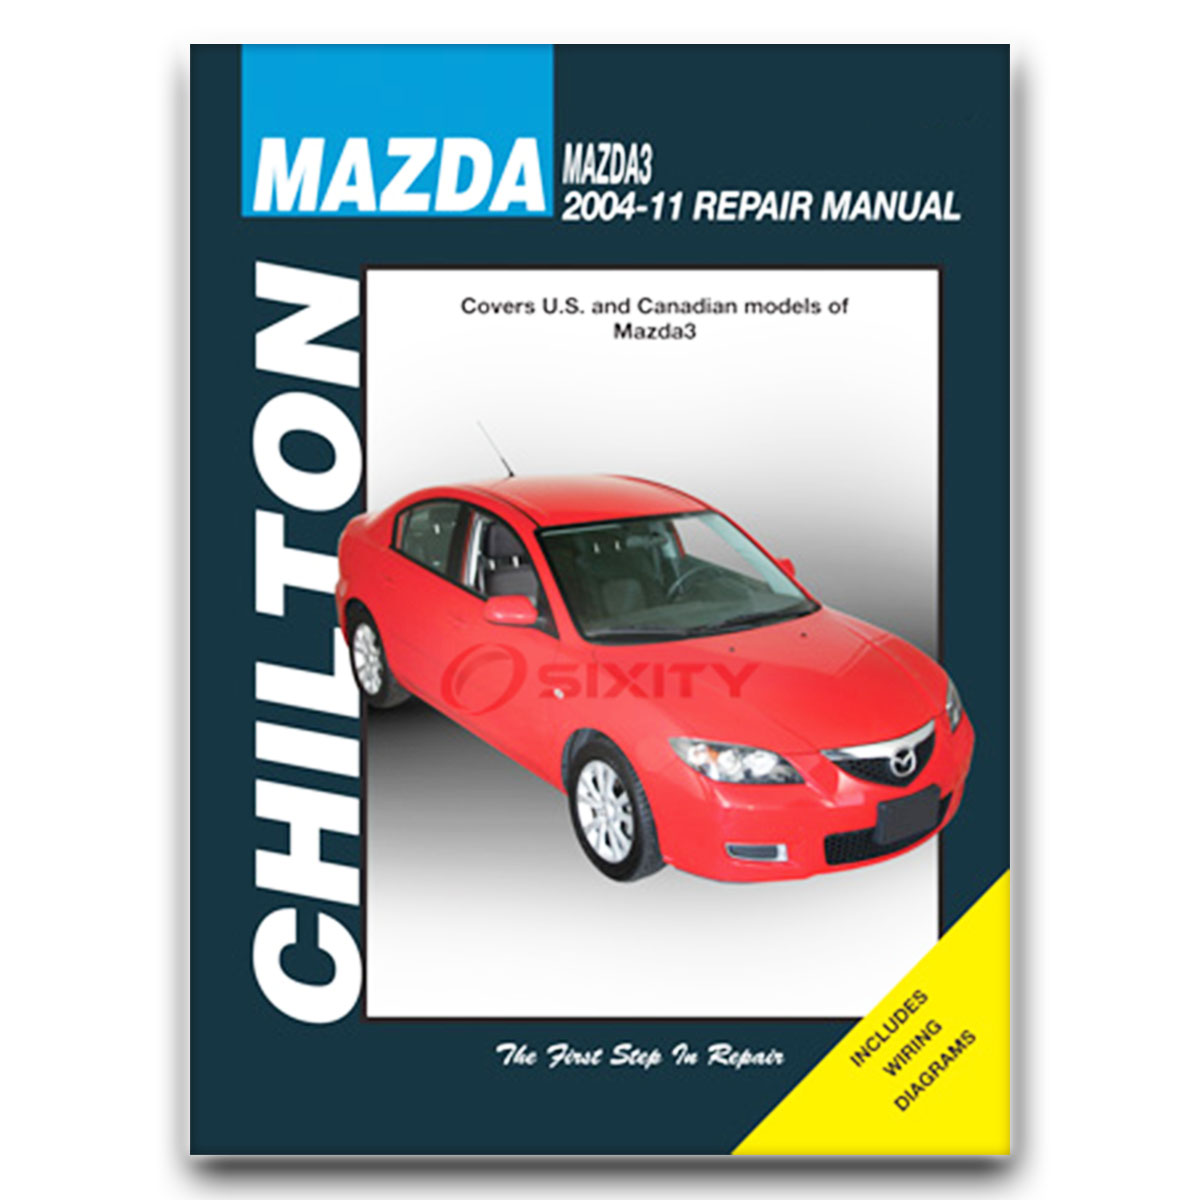 Mazda 3 chilton repair manual s i mazdaspeed sp23 shop service sx621 repair book cheapraybanclubmaster